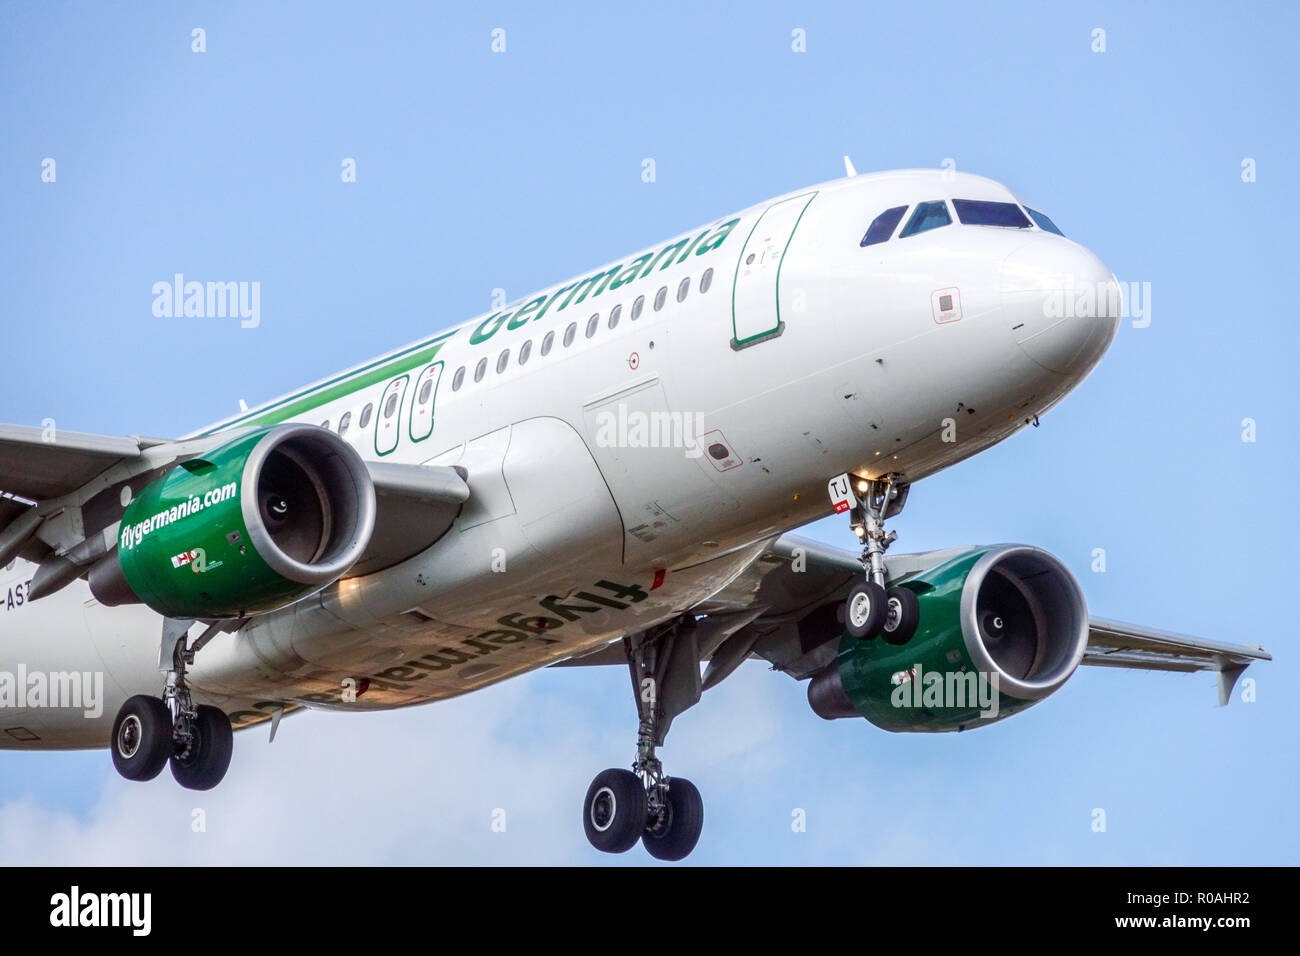 Plane Airbus A319 Germania airlines landing - Stock Image